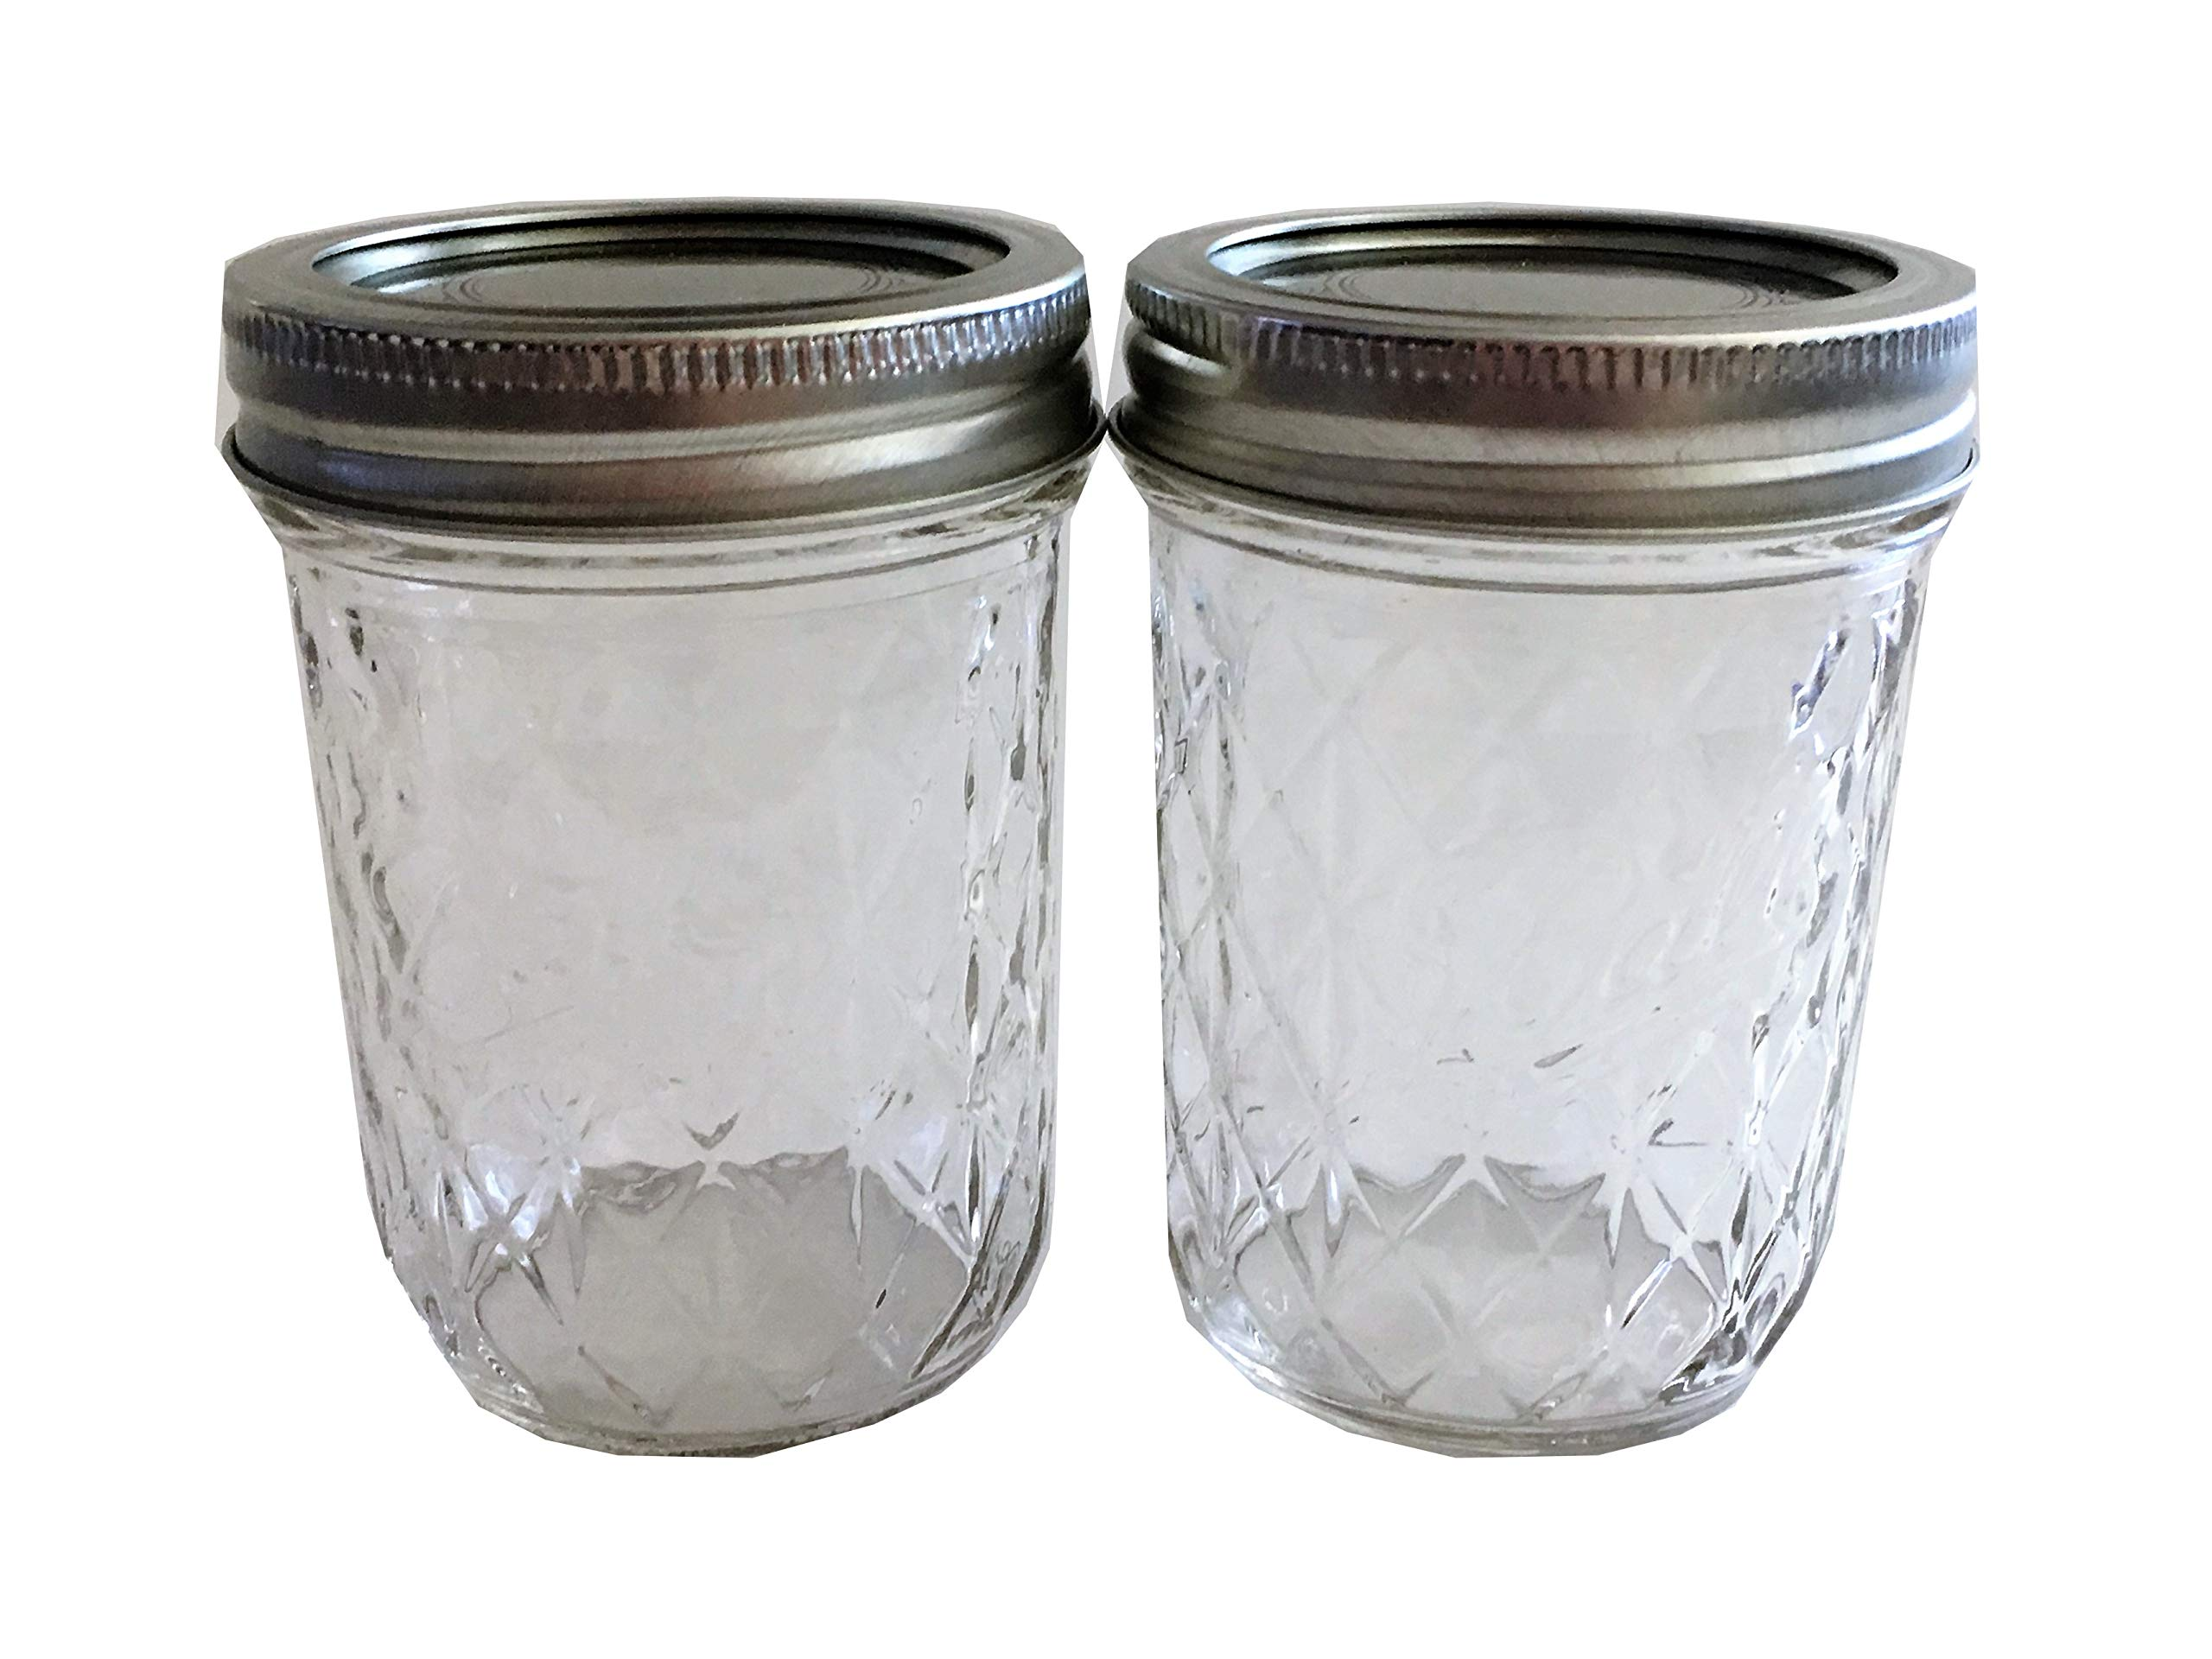 Mason Ball Jelly Jars-8 oz. each - Quilted Crystal Style-Set of 2